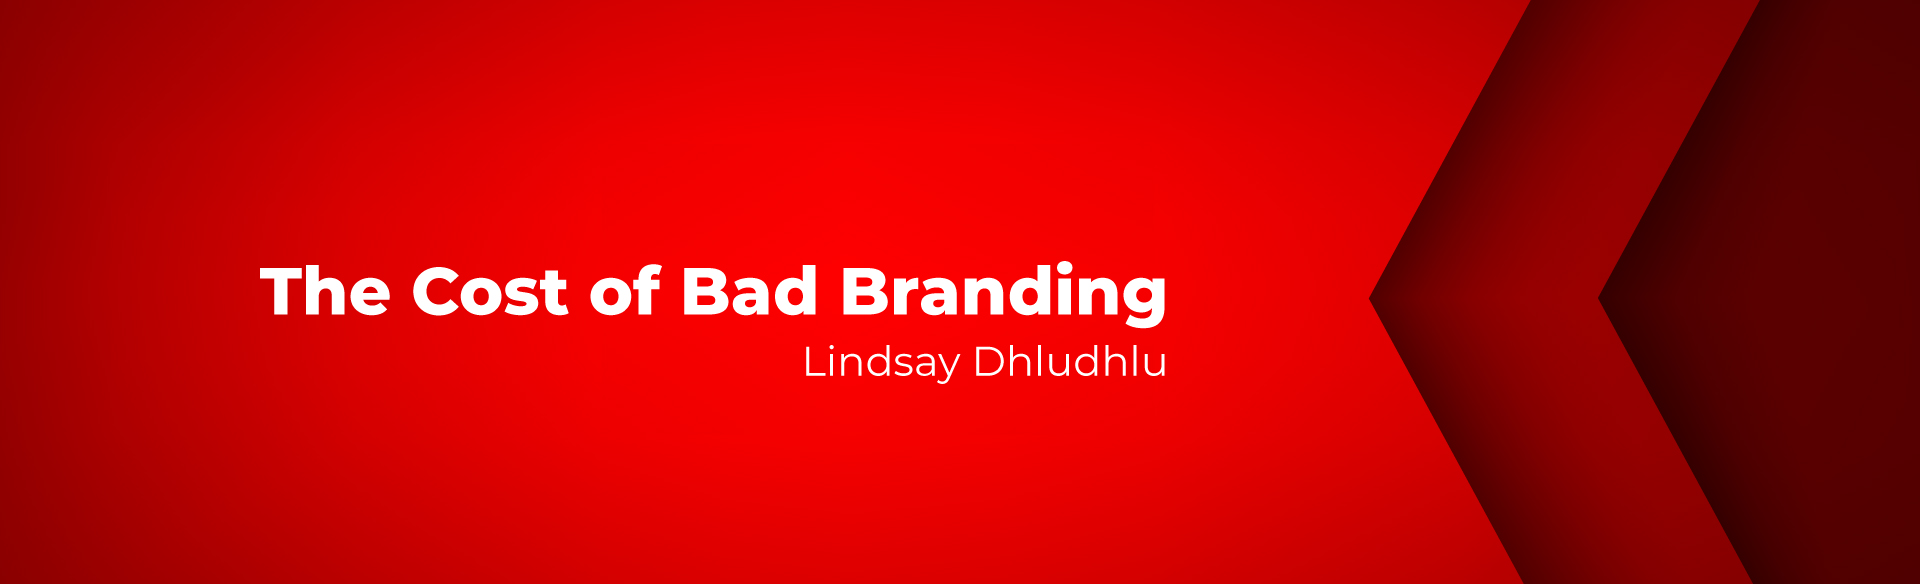 What Is The Cost of Bad Branding?